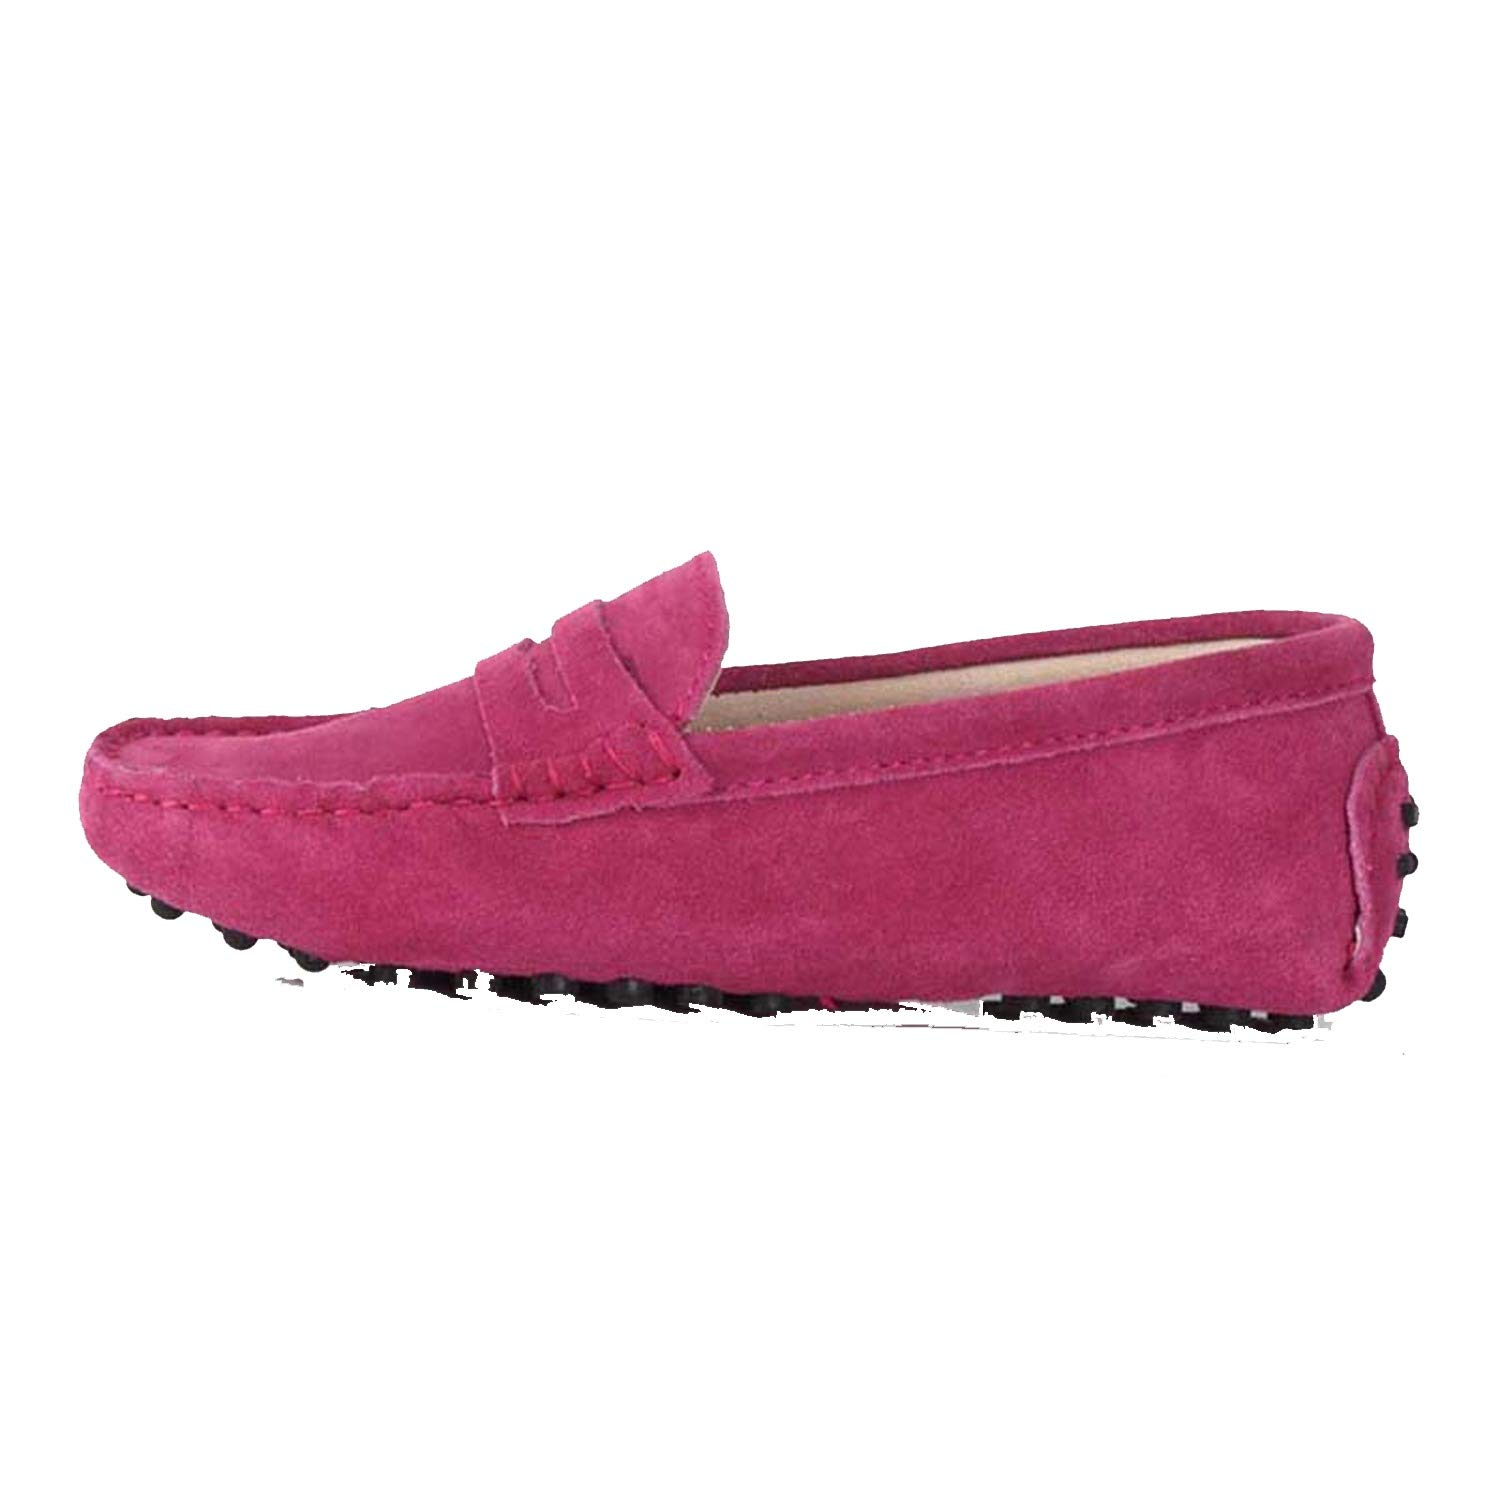 Hot Pink Women's Woman shoes Flats Casual Loafers Soft Slip On Moccasins Lady Driving shoes